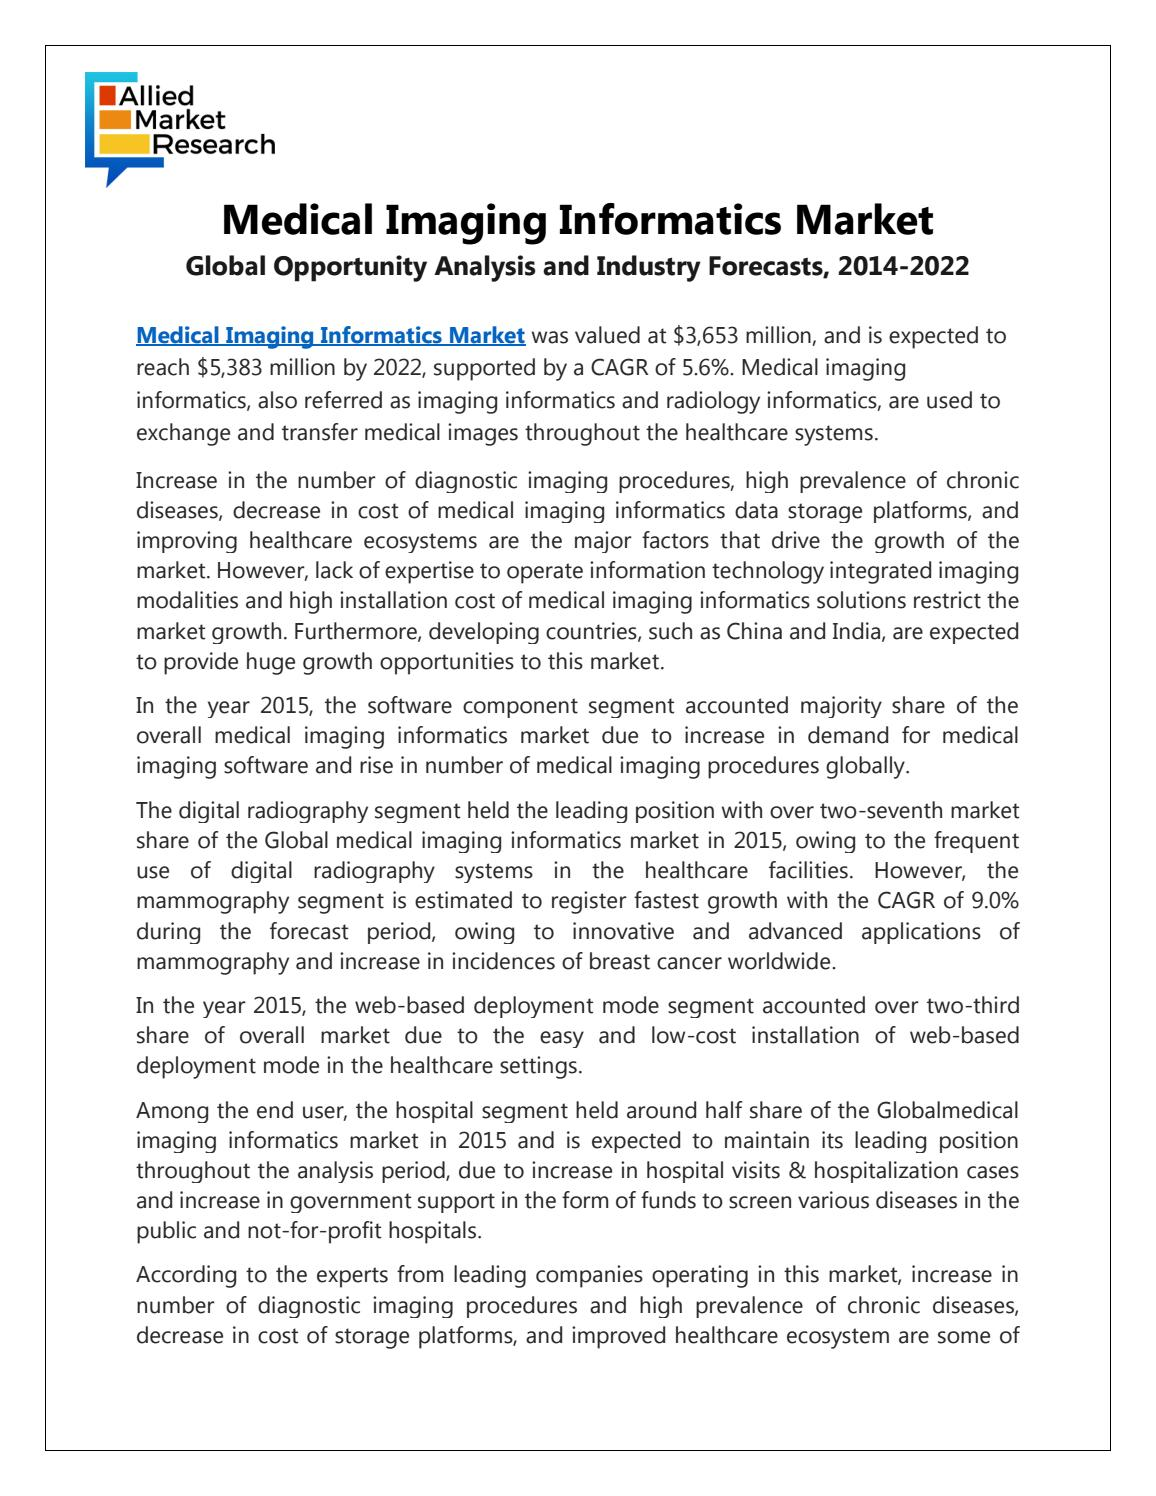 Medical Imaging Information Market by rediffmail920 - issuu dbb79321c02